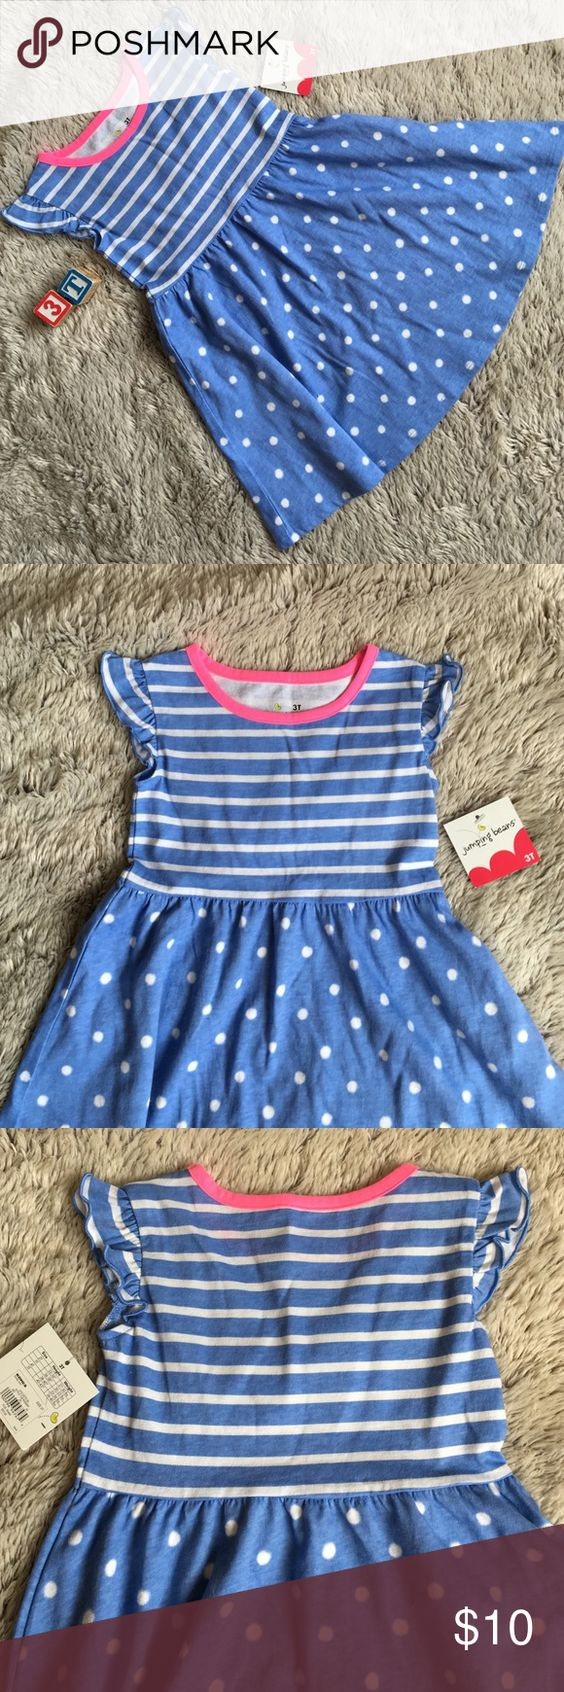 NWT-Sky Blue Skater Dress New w tags. Sky blue dress w striped top and polka dot bottom.  Short ruffled sleeves.  Size 3T.  From a clean, smoke free and pet free home. 🚫no trades Jumping Beans Dresses Casual